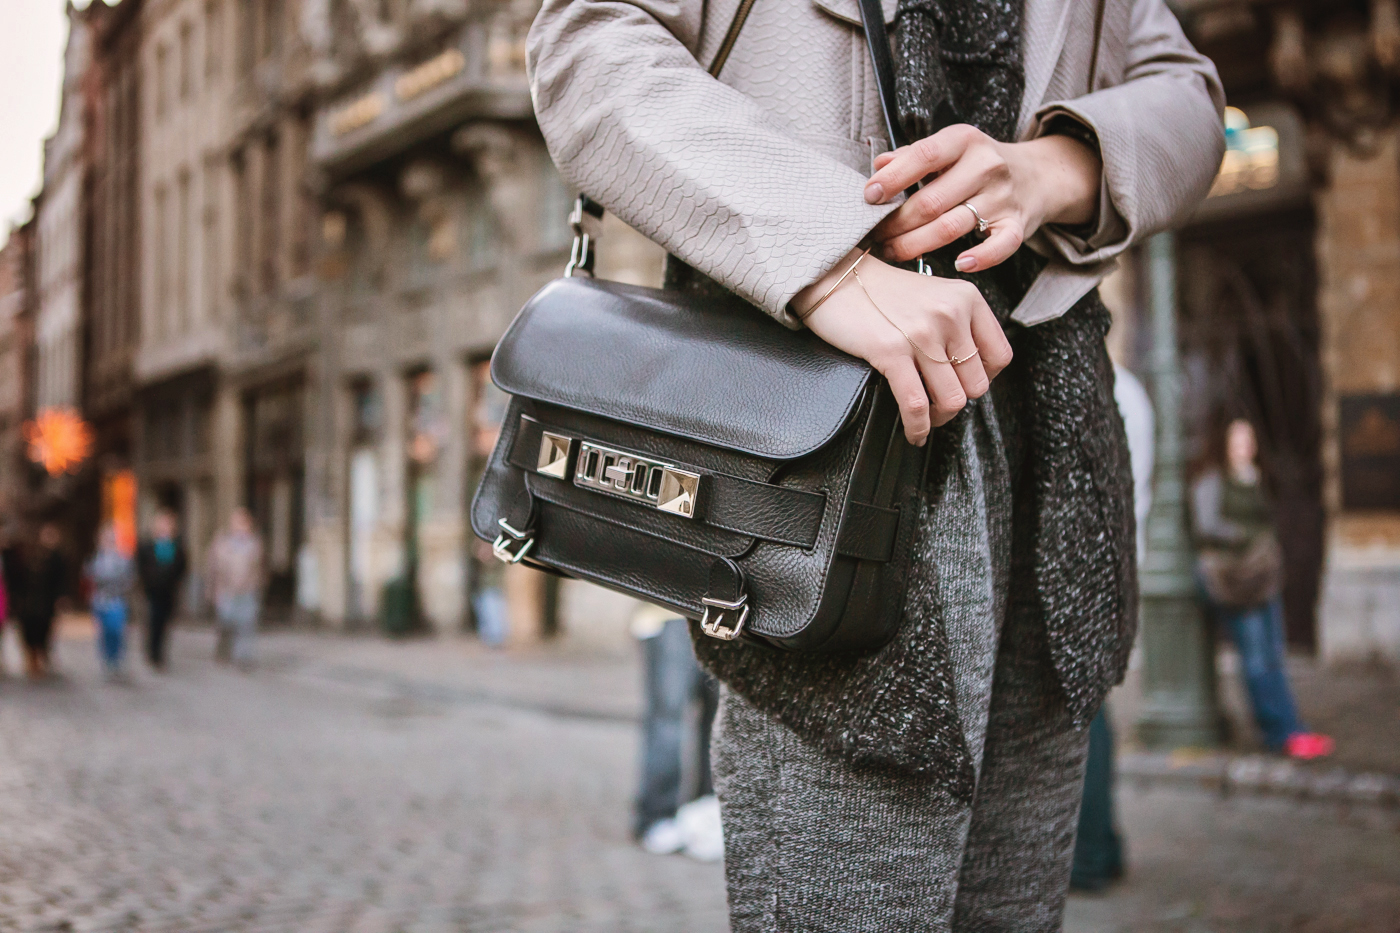 darya kamalova from thecablook com goes to belgium brussels charleroi wears proenza schouler ps11 bag and total grey outfit-40 copy